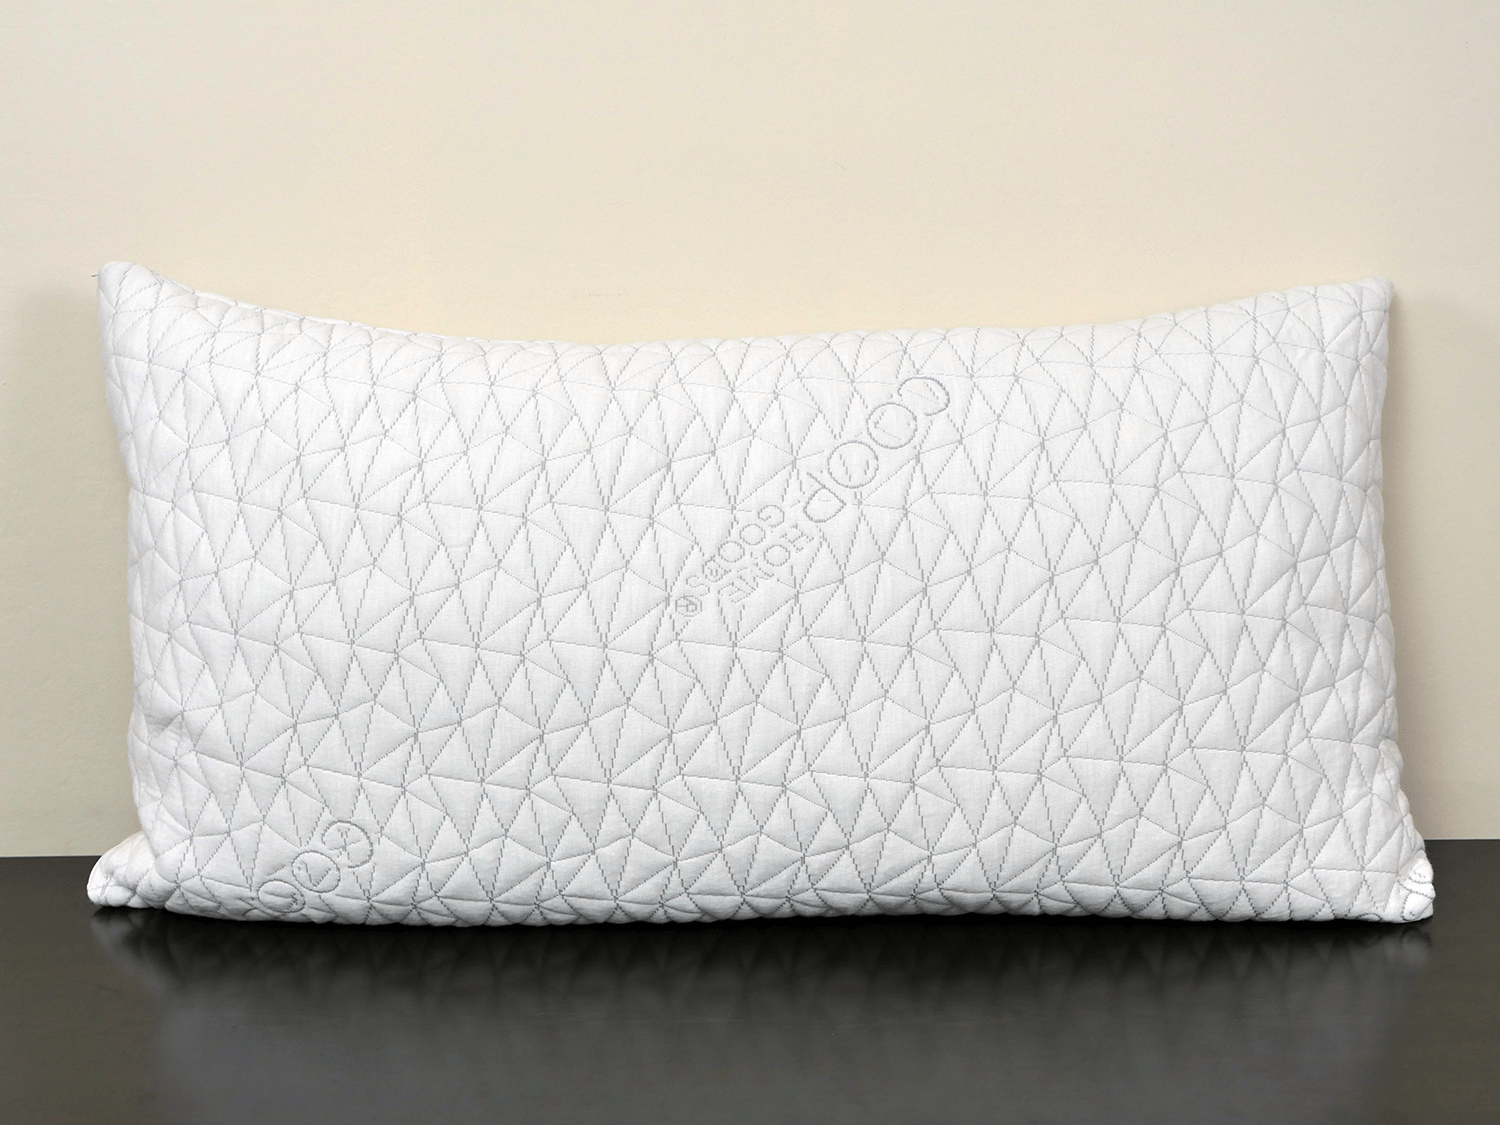 coop home goods pillow Coop Home Goods Memory Foam Pillow Review | Sleepopolis coop home goods pillow